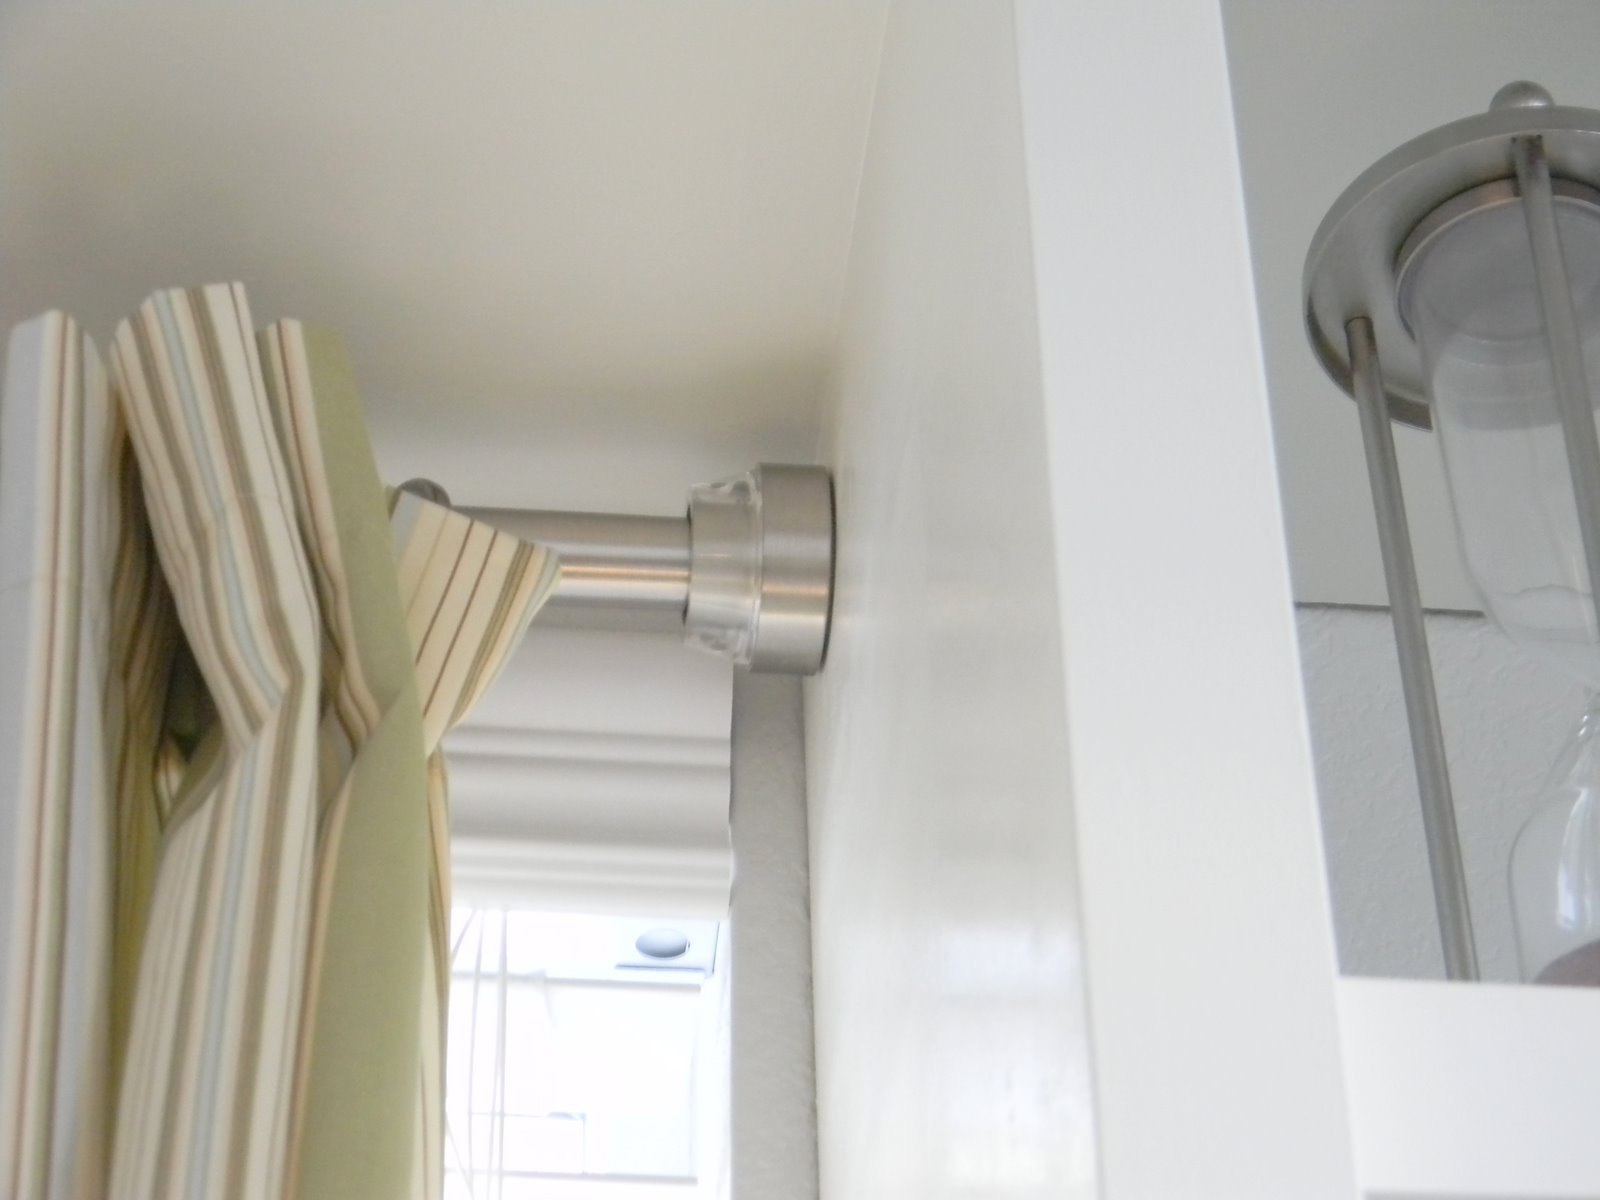 Curtain Rod Shelf